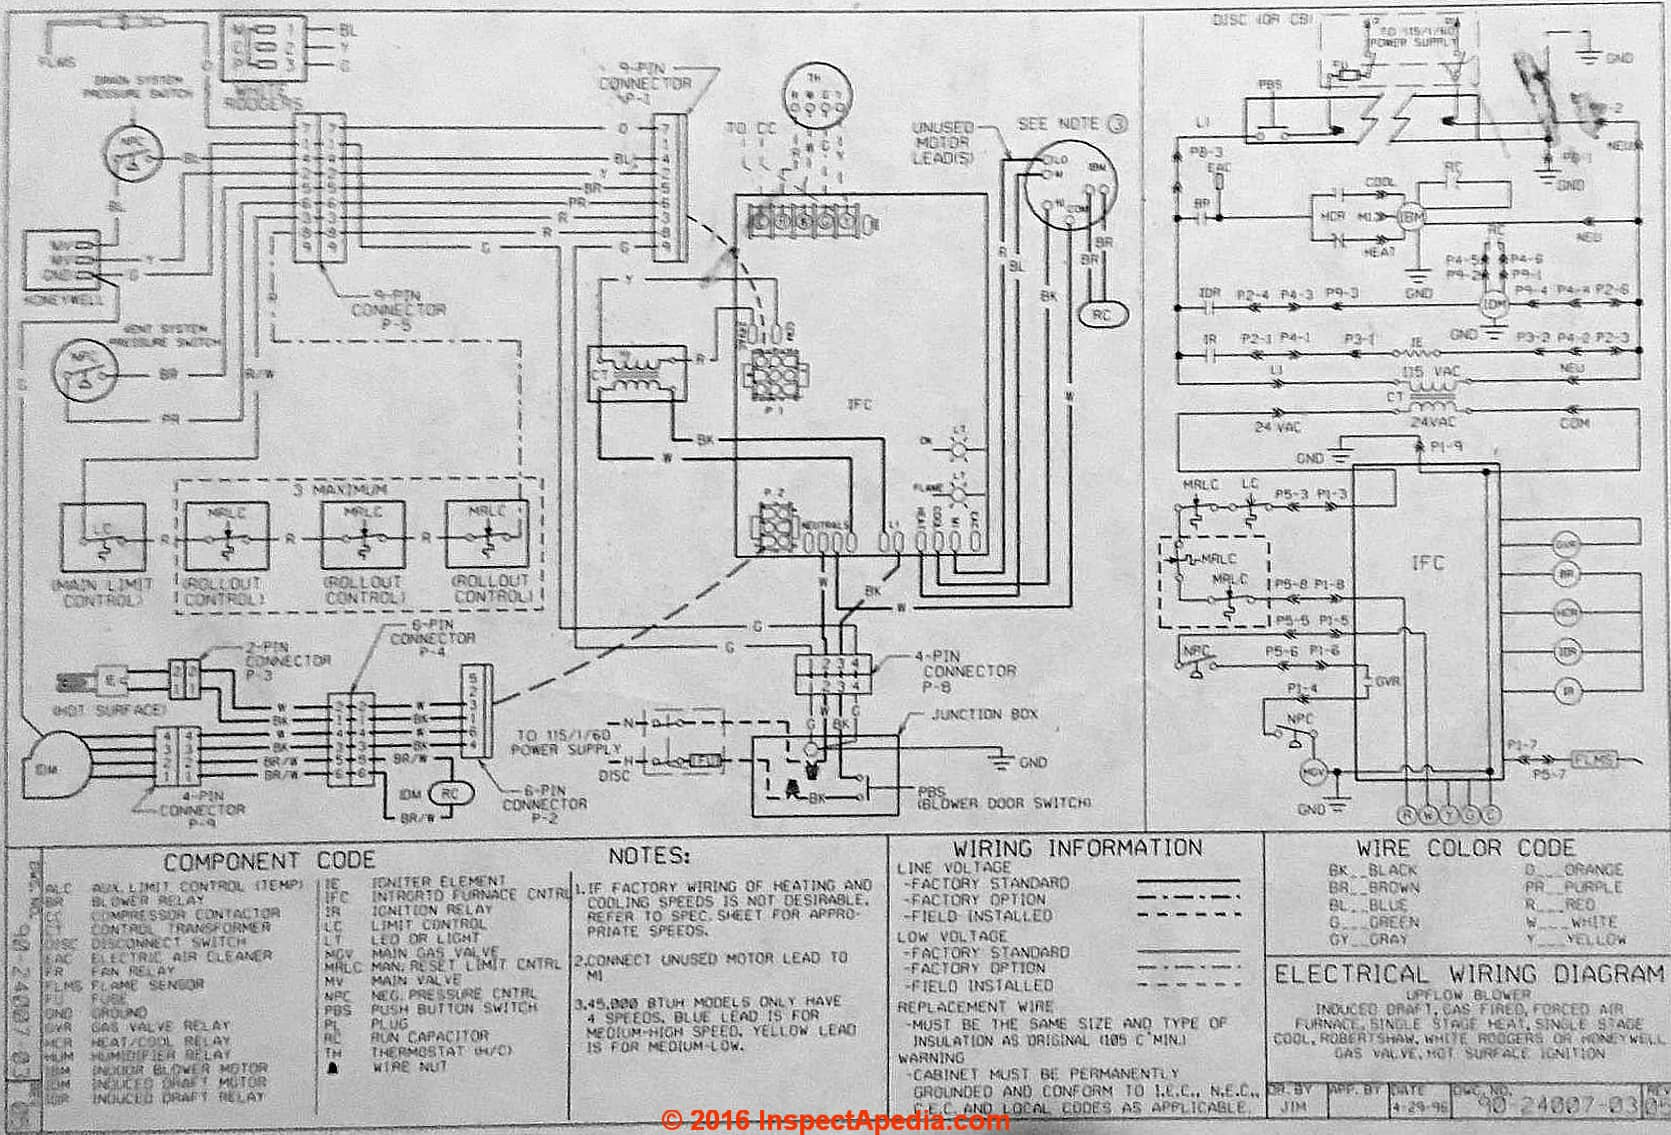 Rheem_AHU_Wiring_Diagram_IAP air conditioner heat pump faqs rheem furnace wiring diagram at crackthecode.co